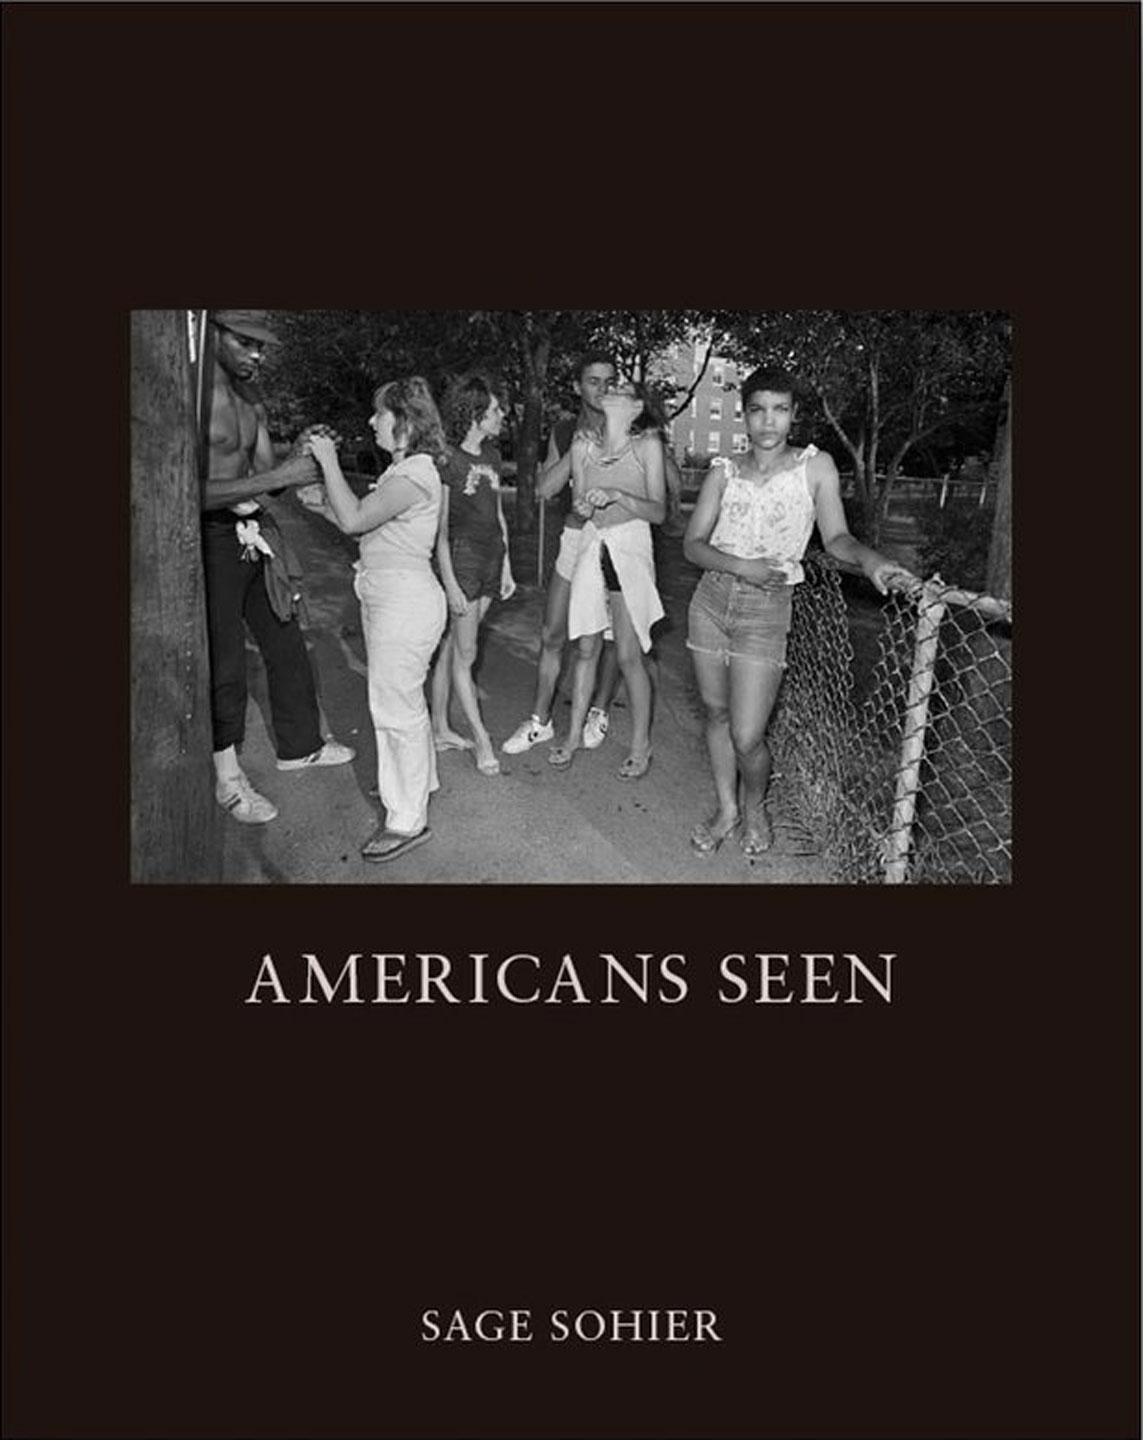 NZ Library #3: Sage Sohier: Americans Seen, Limited Edition (NZ Library - Set Three) [SIGNED]